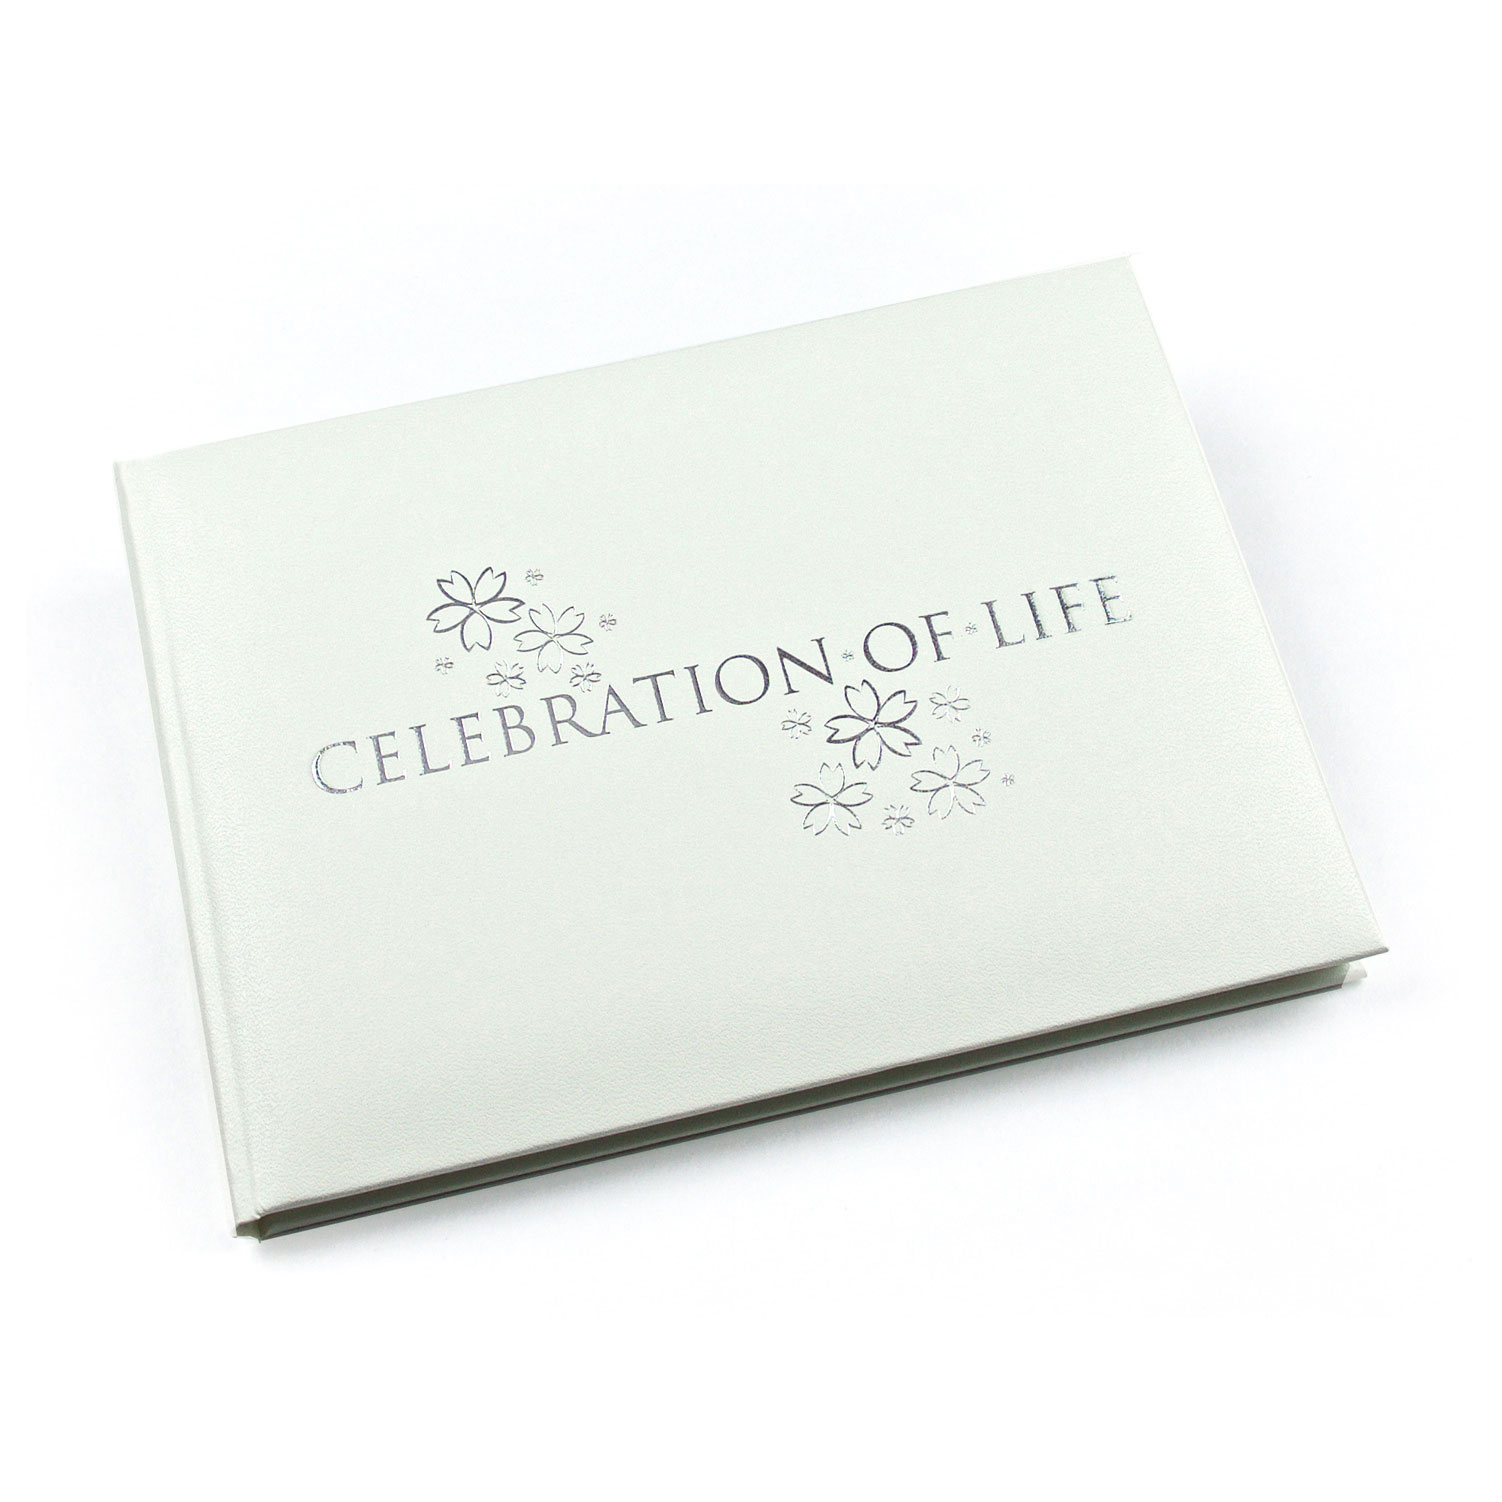 EL57CLW - Esposti Celebration Of Life - Condolence Book - Funeral Guest  Book - White - Open Format Inner Pages - 8 9 x 6 7 x 1 2 inches